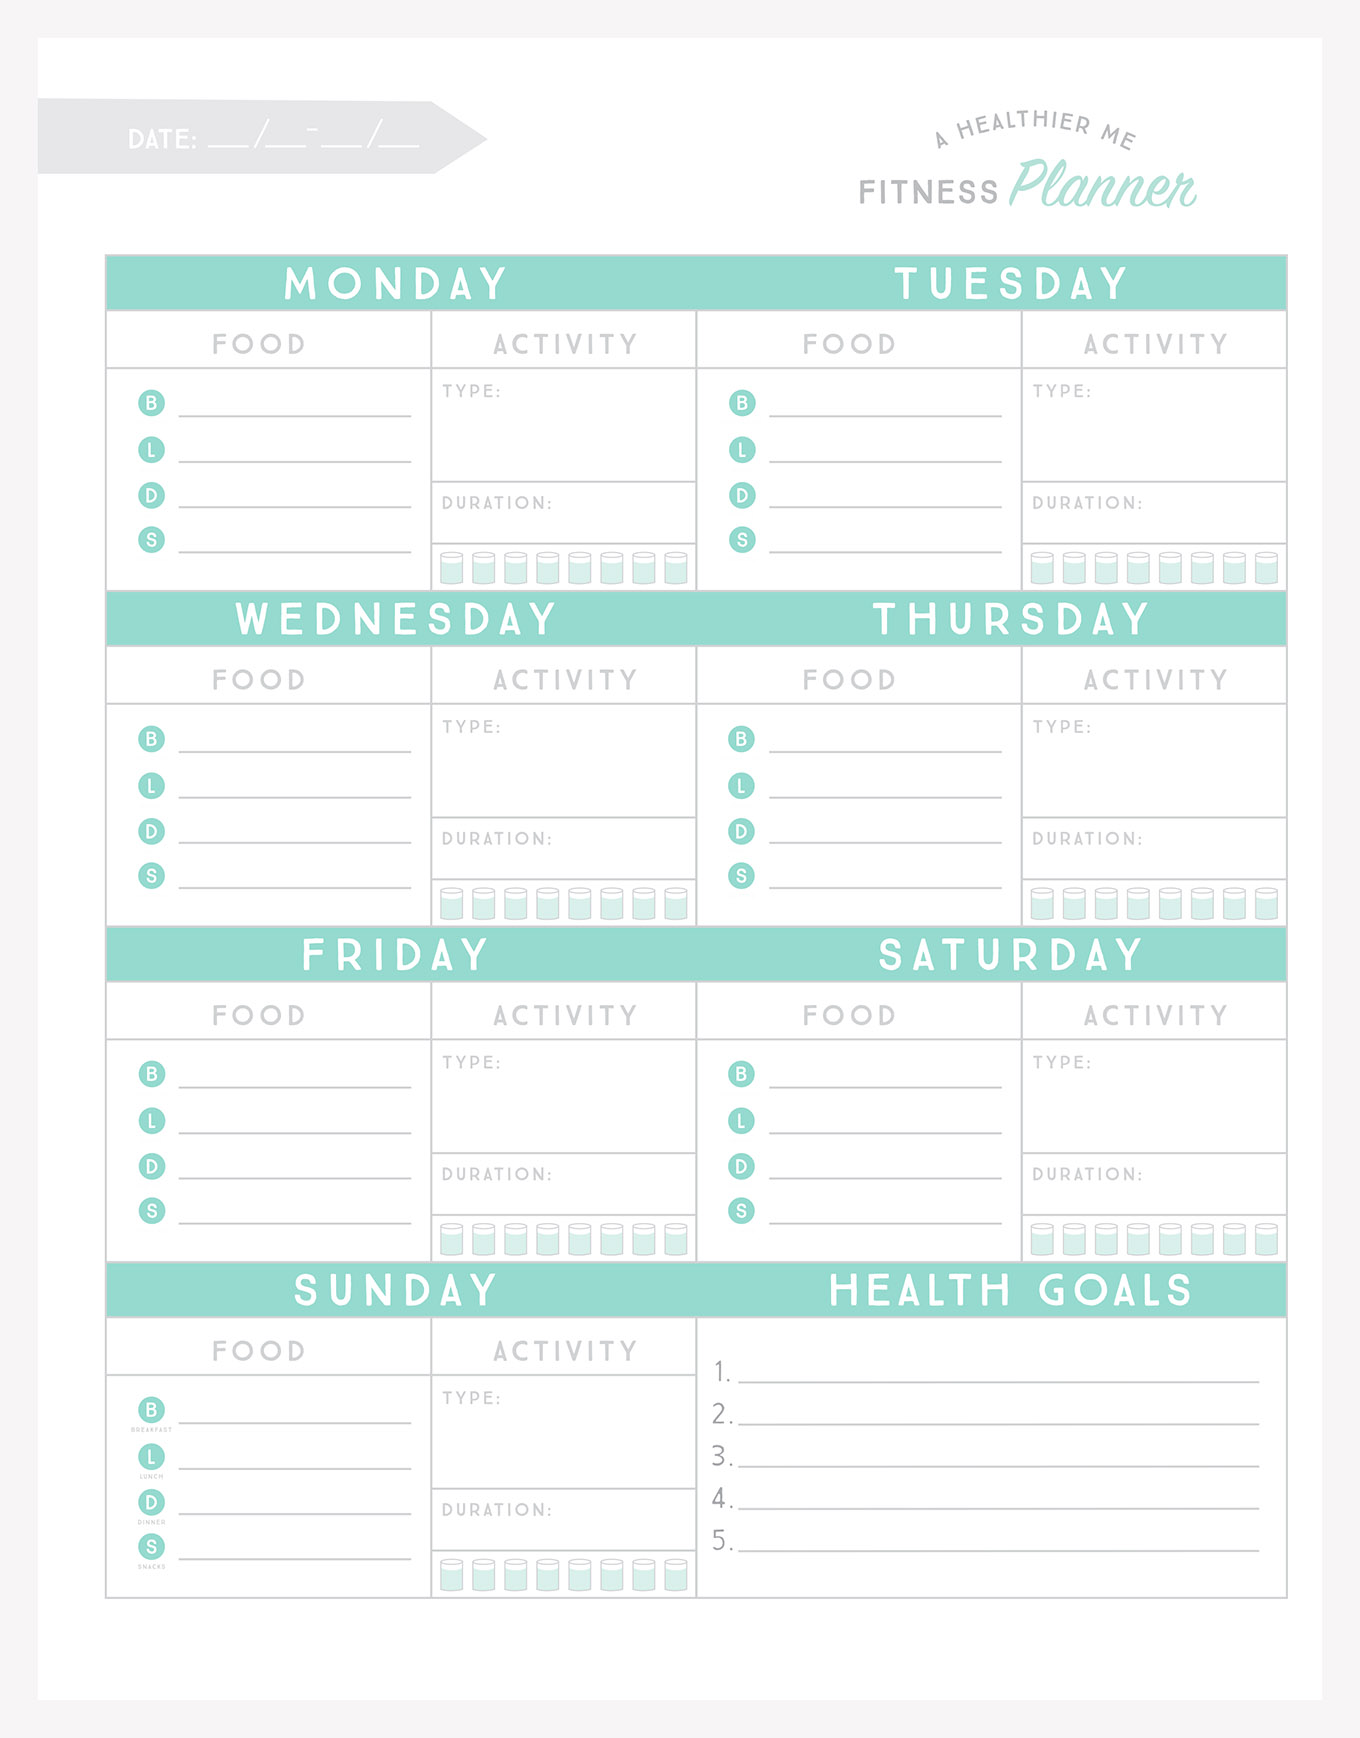 picture regarding Fitness Planner Printable named Free of charge Printable Health and fitness Planner